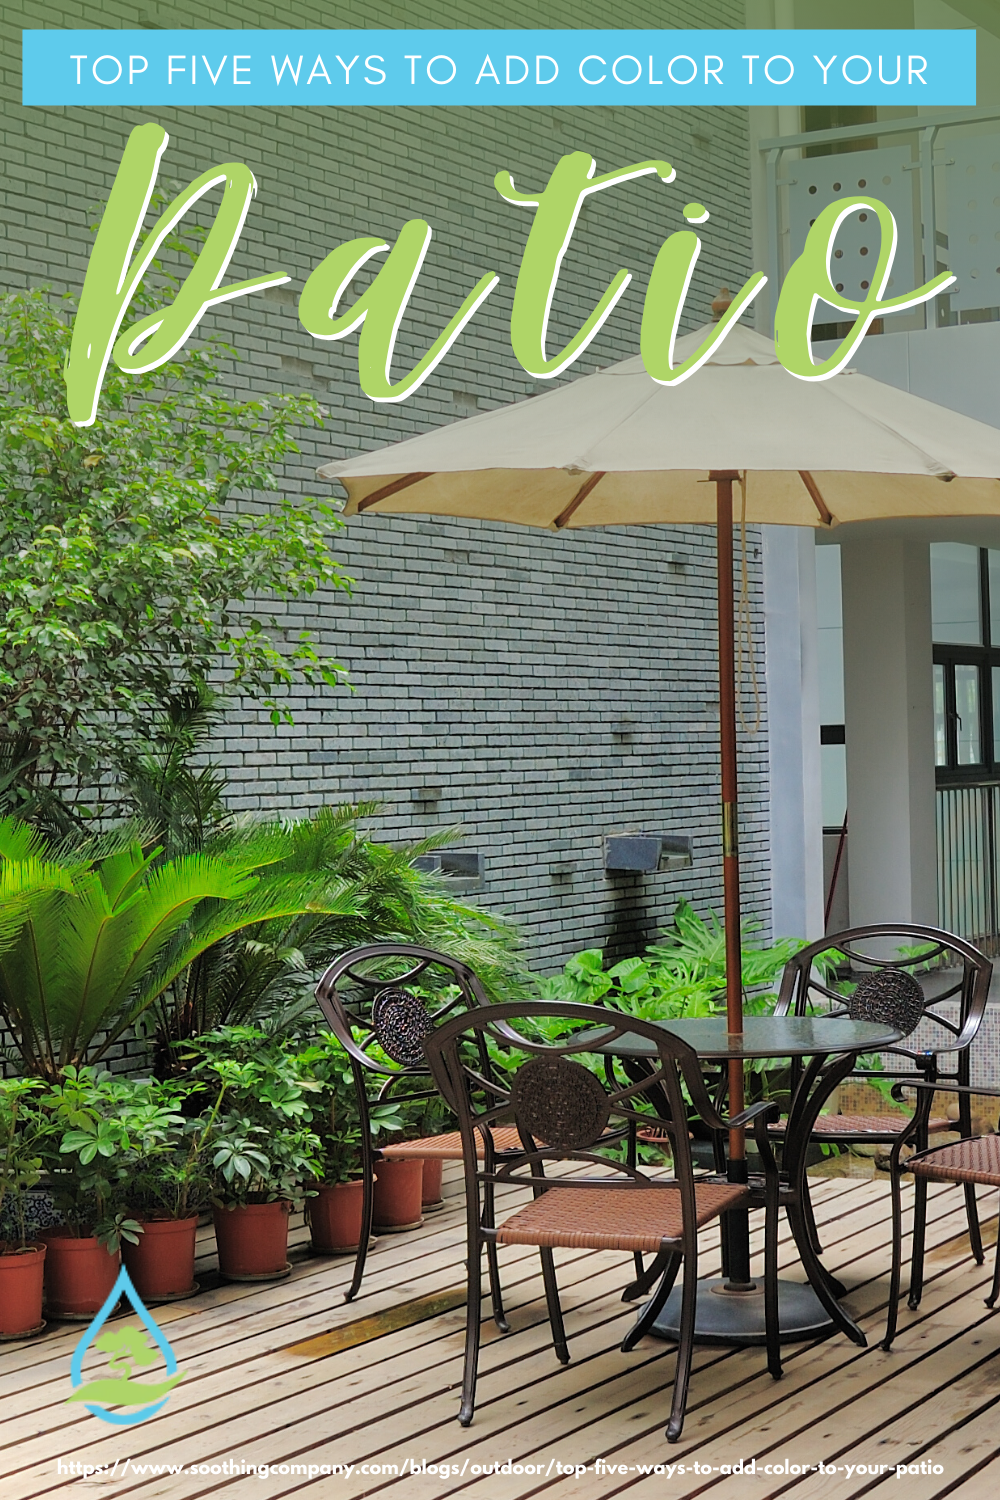 Top Five Ways To Add Color To Your Patio in 2020   Patio ...